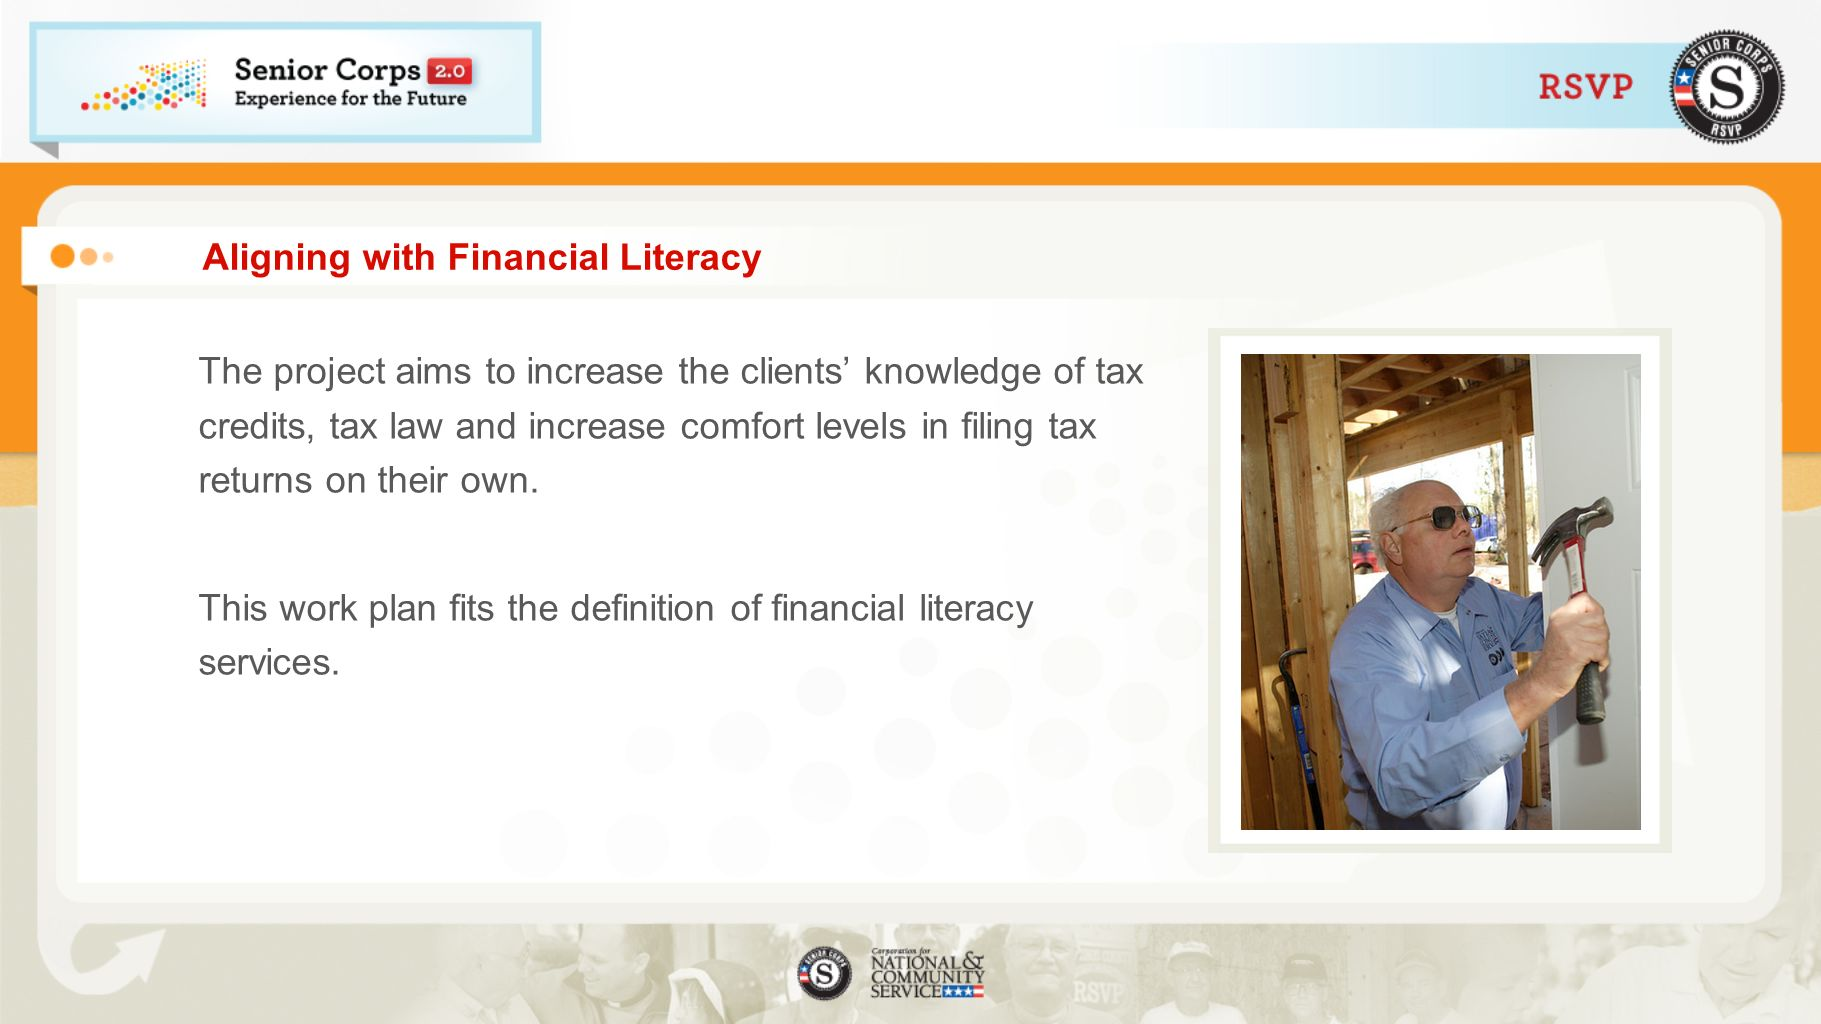 Aligning with Financial Literacy The project aims to increase the clients knowledge of tax credits, tax law and increase comfort levels in filing tax returns on their own.